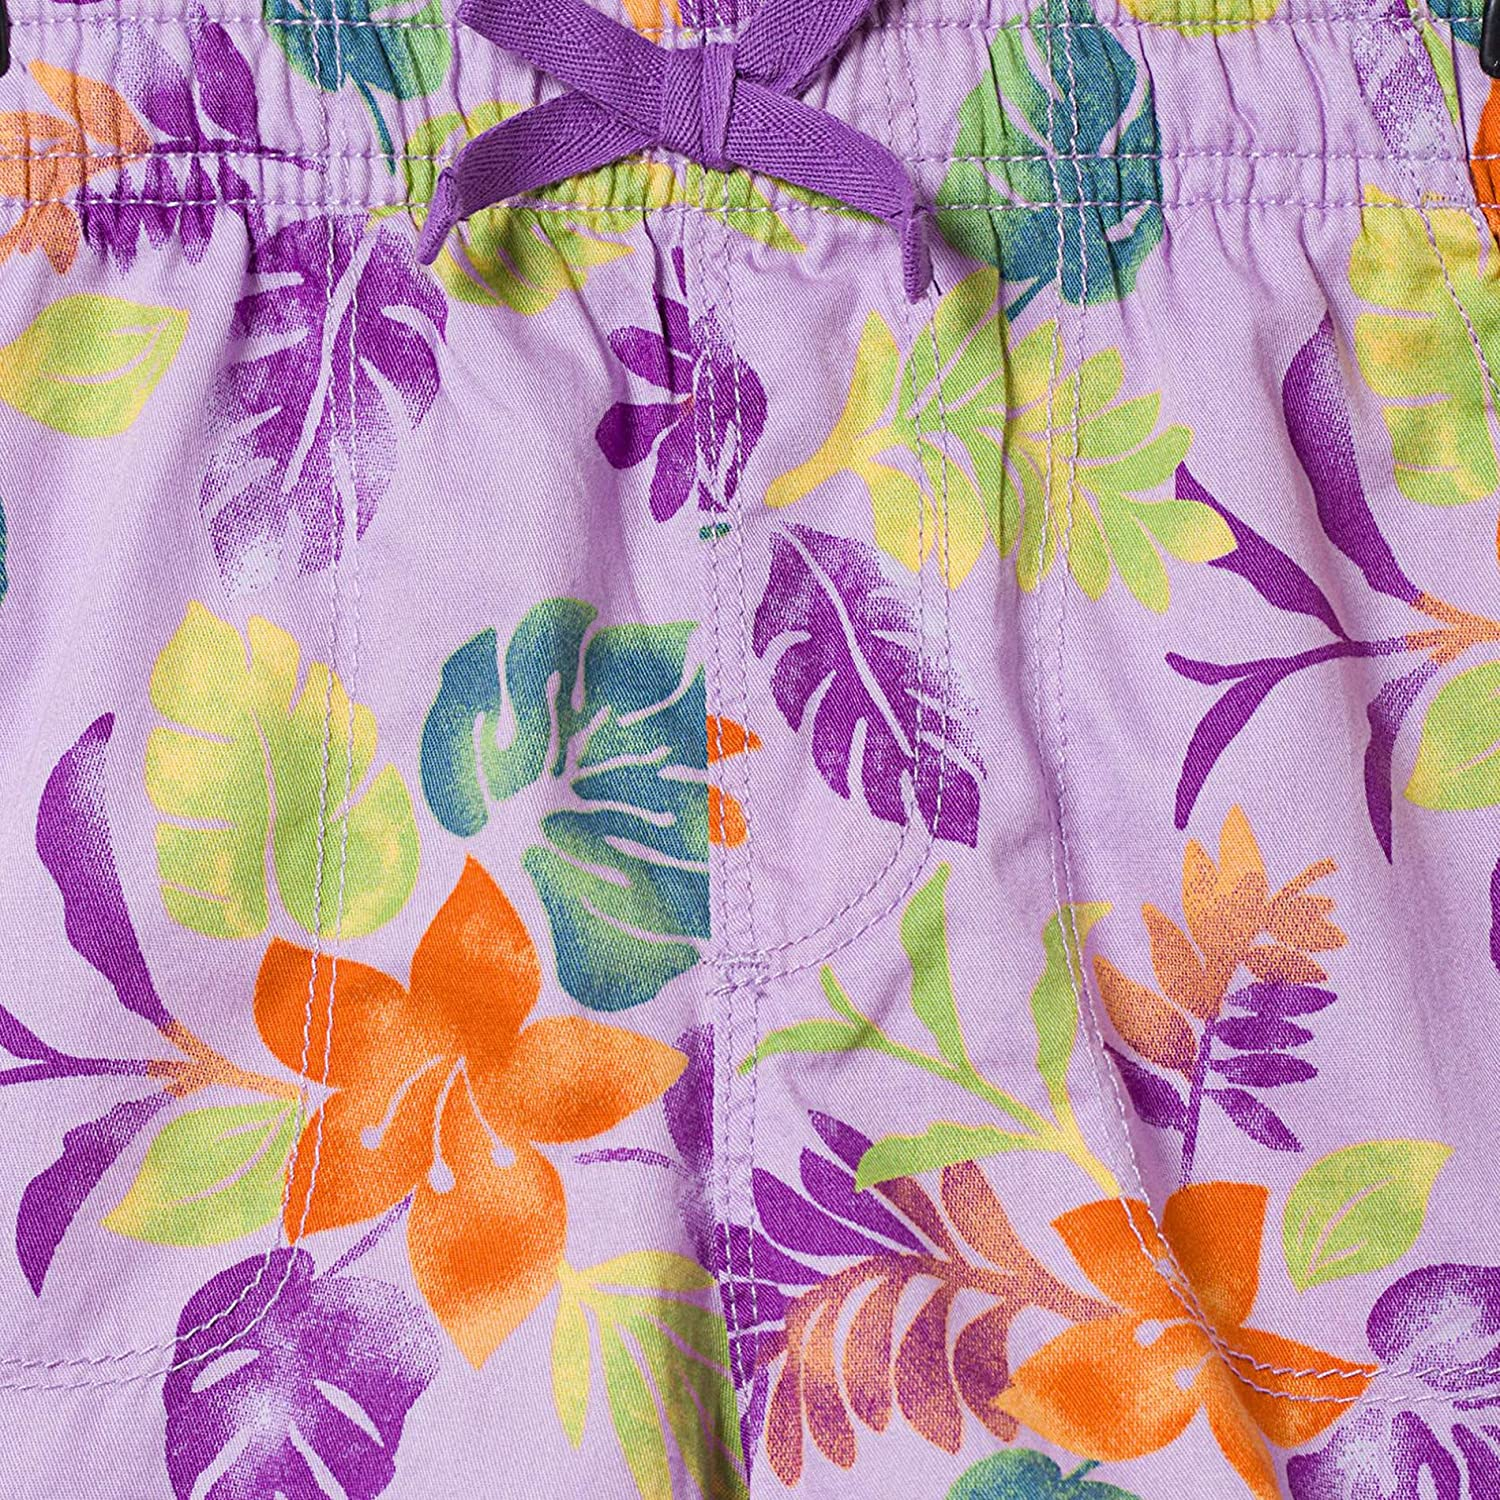 16,Purple bossini Delight Girls Tropical Print Twill Shorts US Size 3t